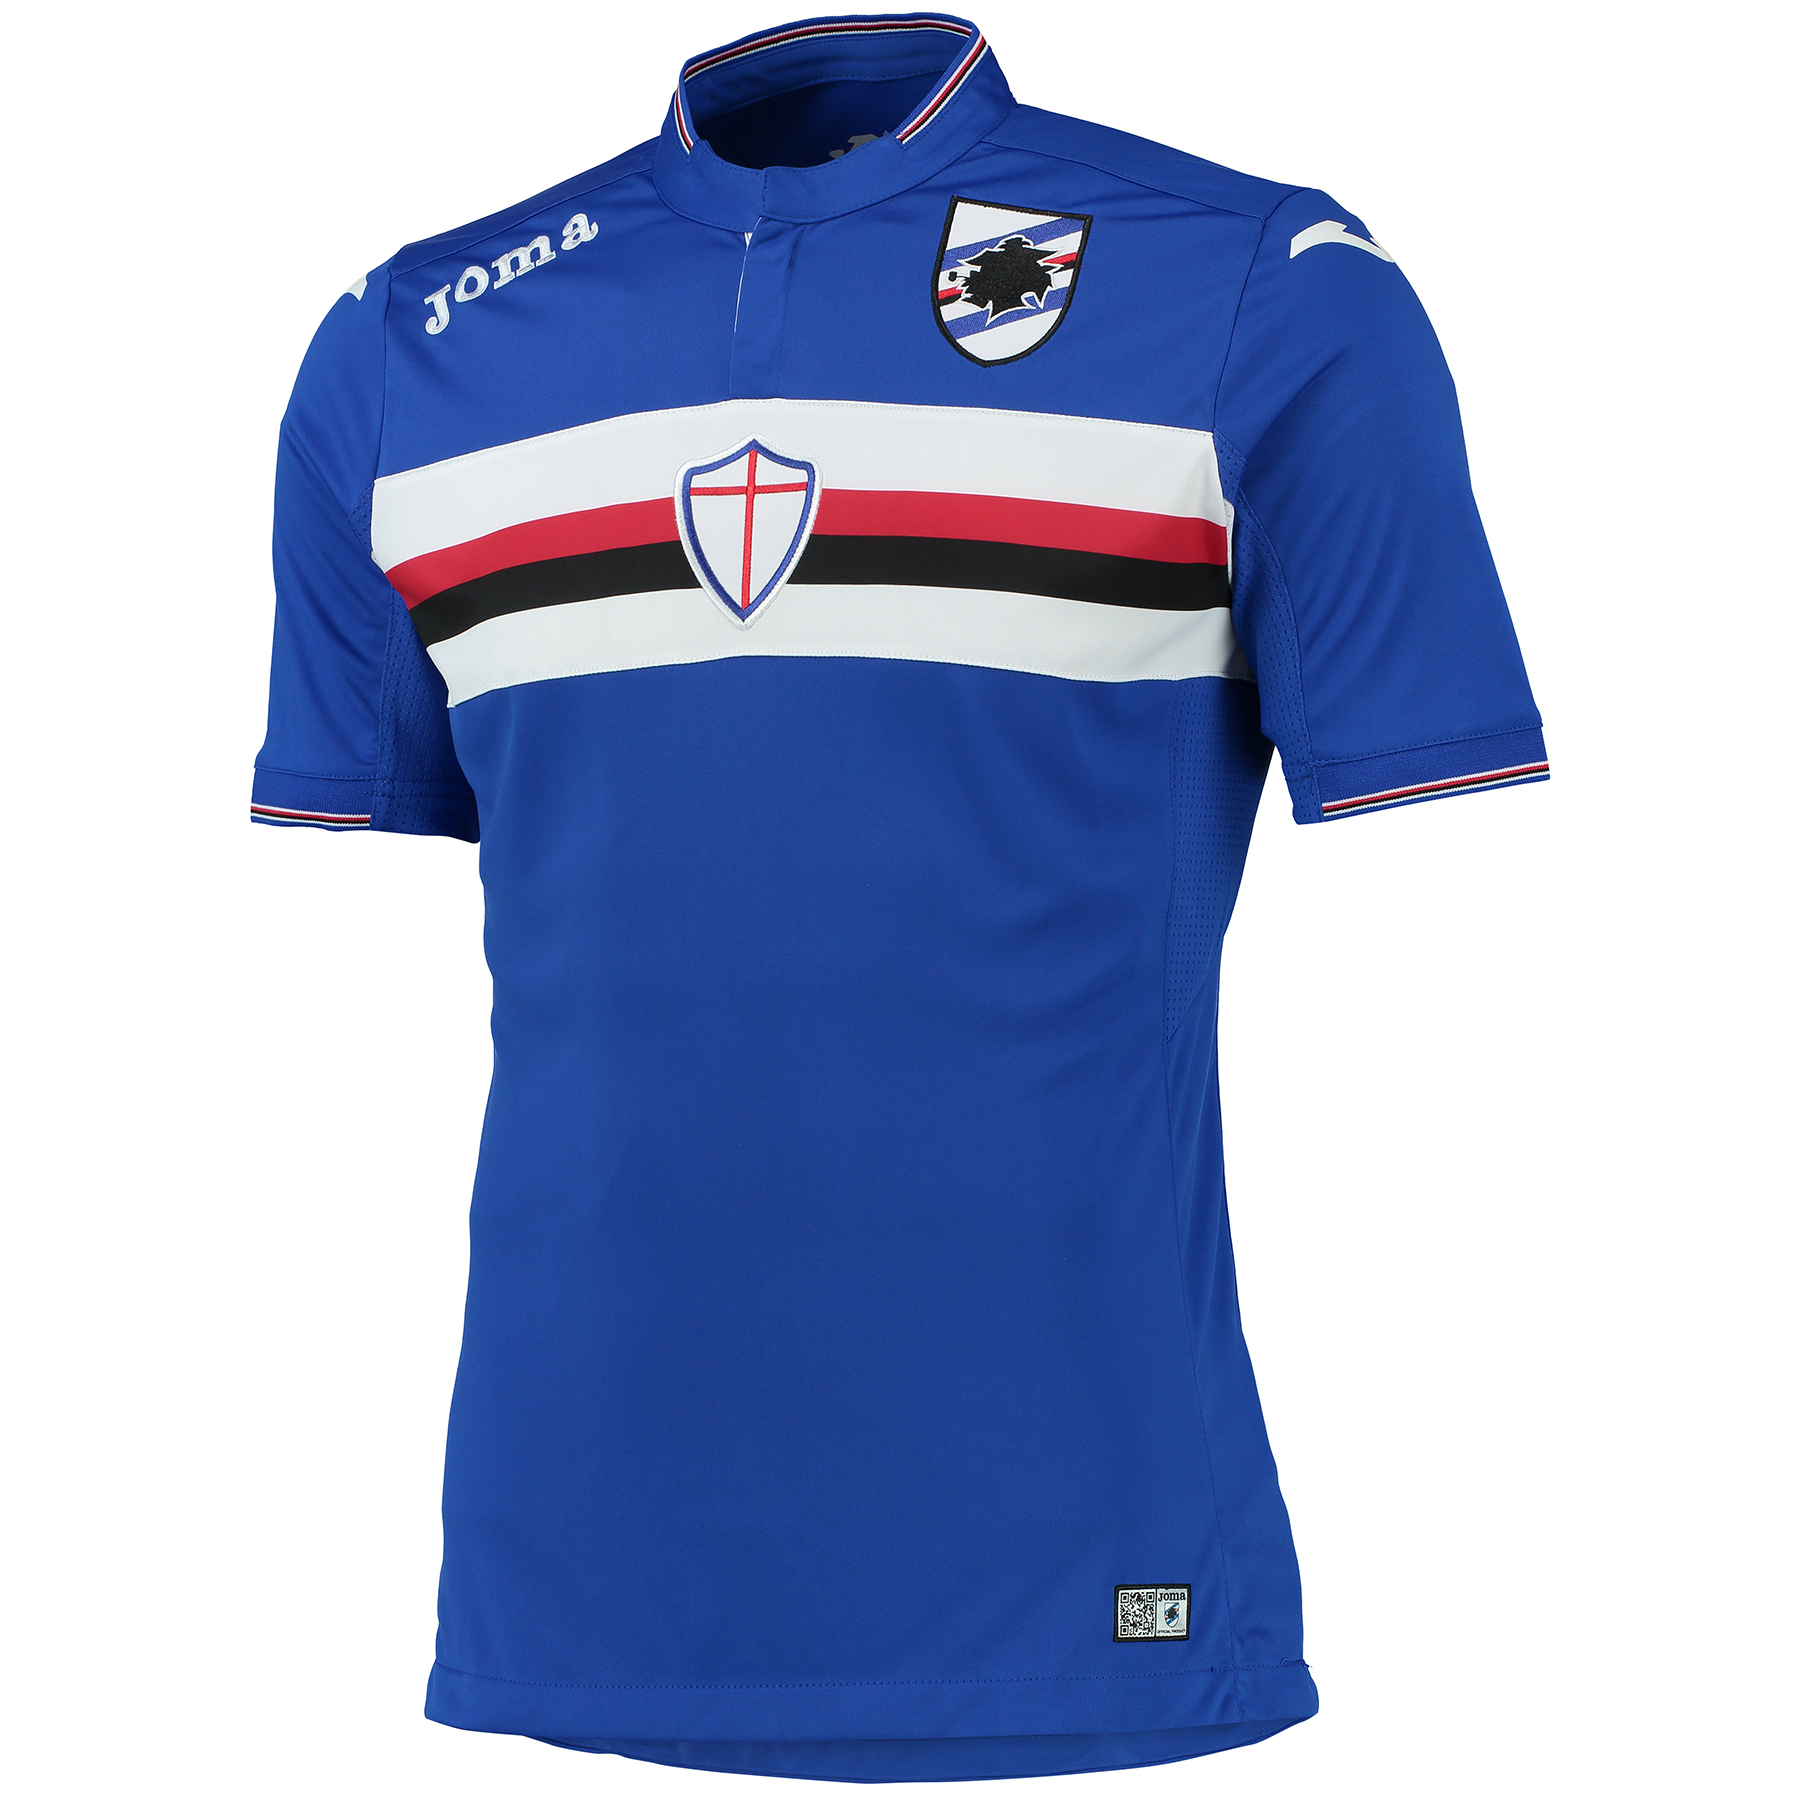 Sampdoria Home Shirt 2015-16 Blue